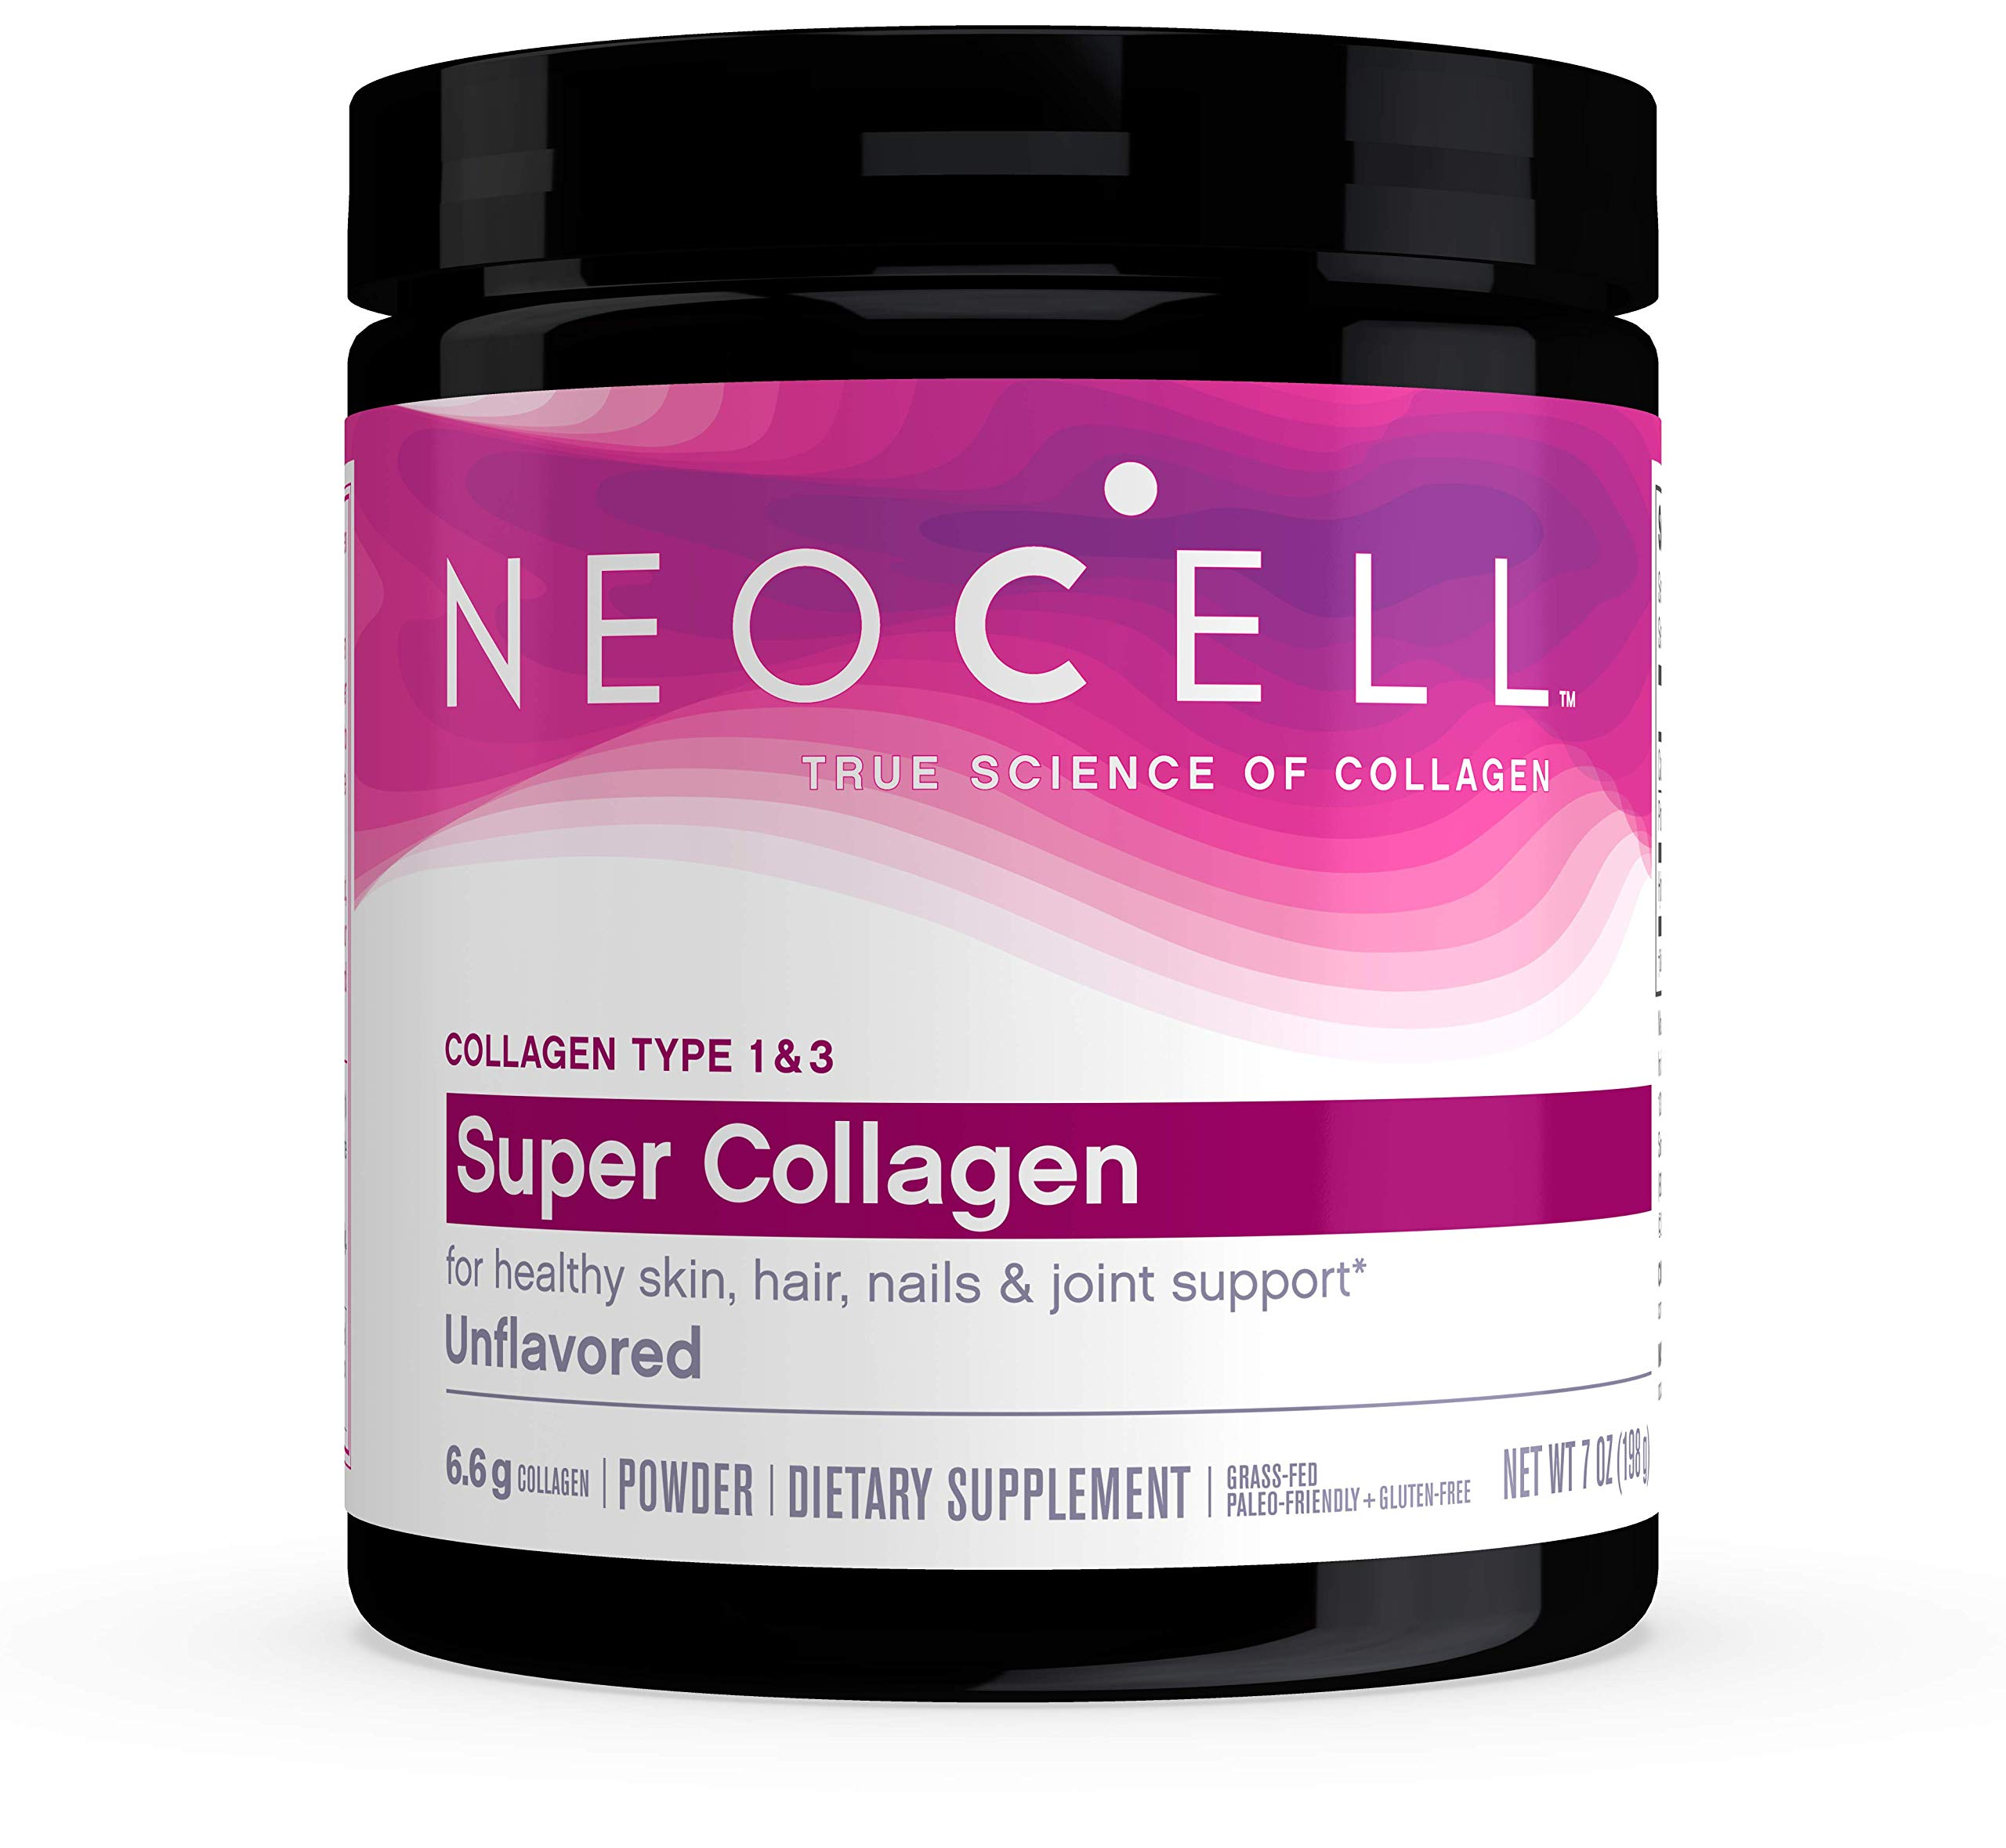 NeoCell Super Collagen Powder - 6,600mg Collagen Types 1 & 3 - unflavored - 7 Ounces (Packaging May Vary) by Neocell